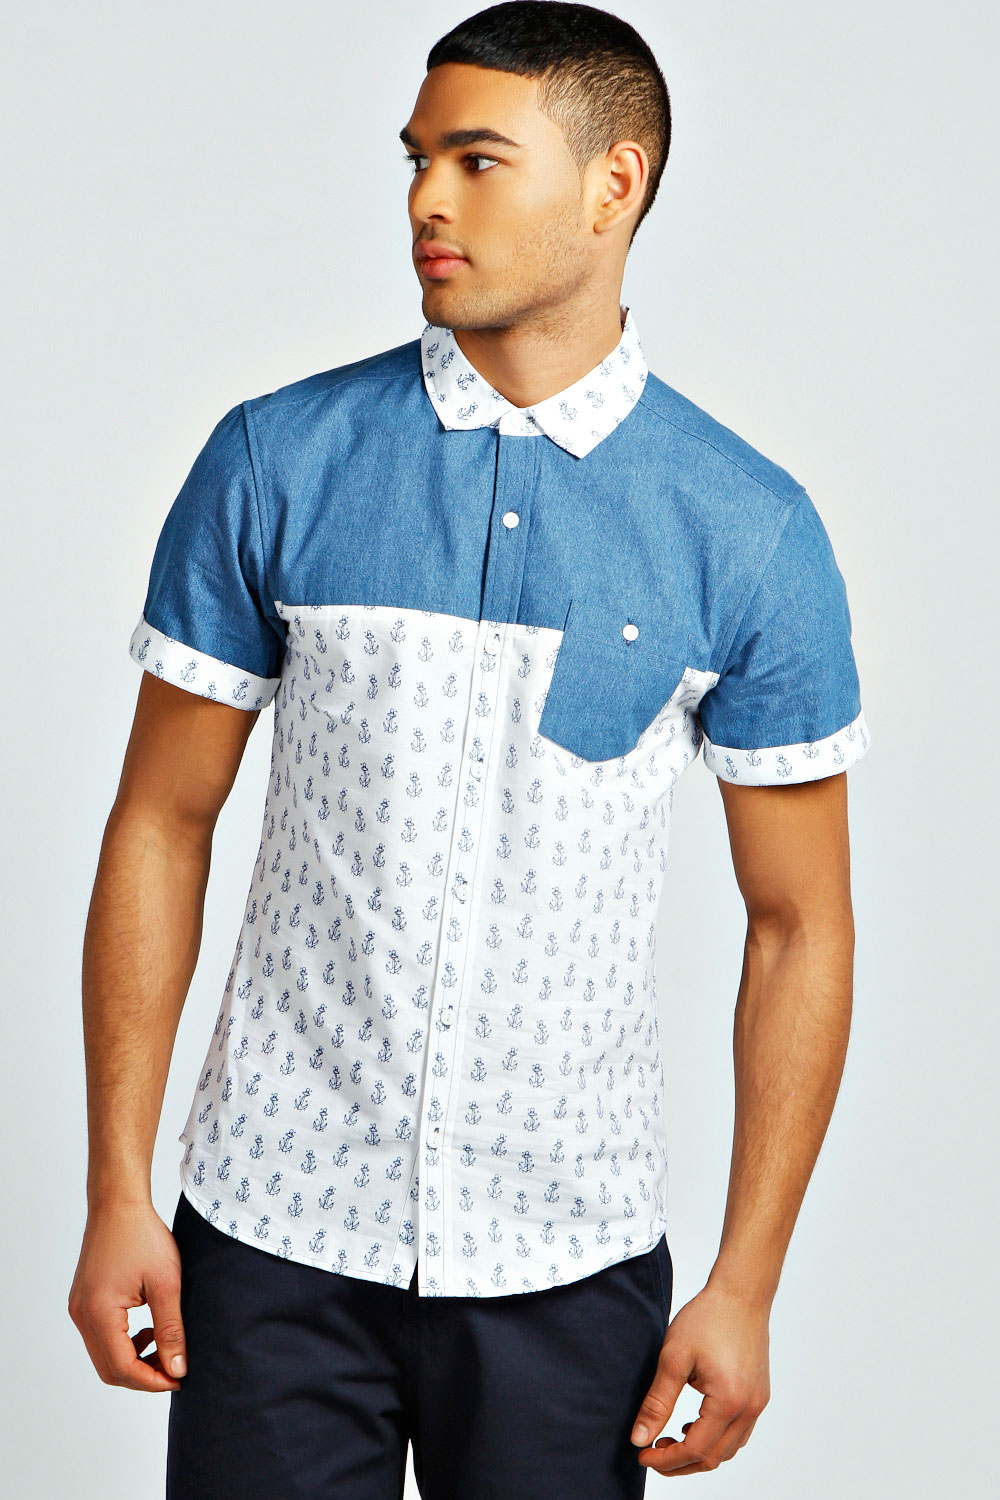 Boohoo-Mens-Short-Sleeve-Nautical-Print-Denim-Shirt-in-White